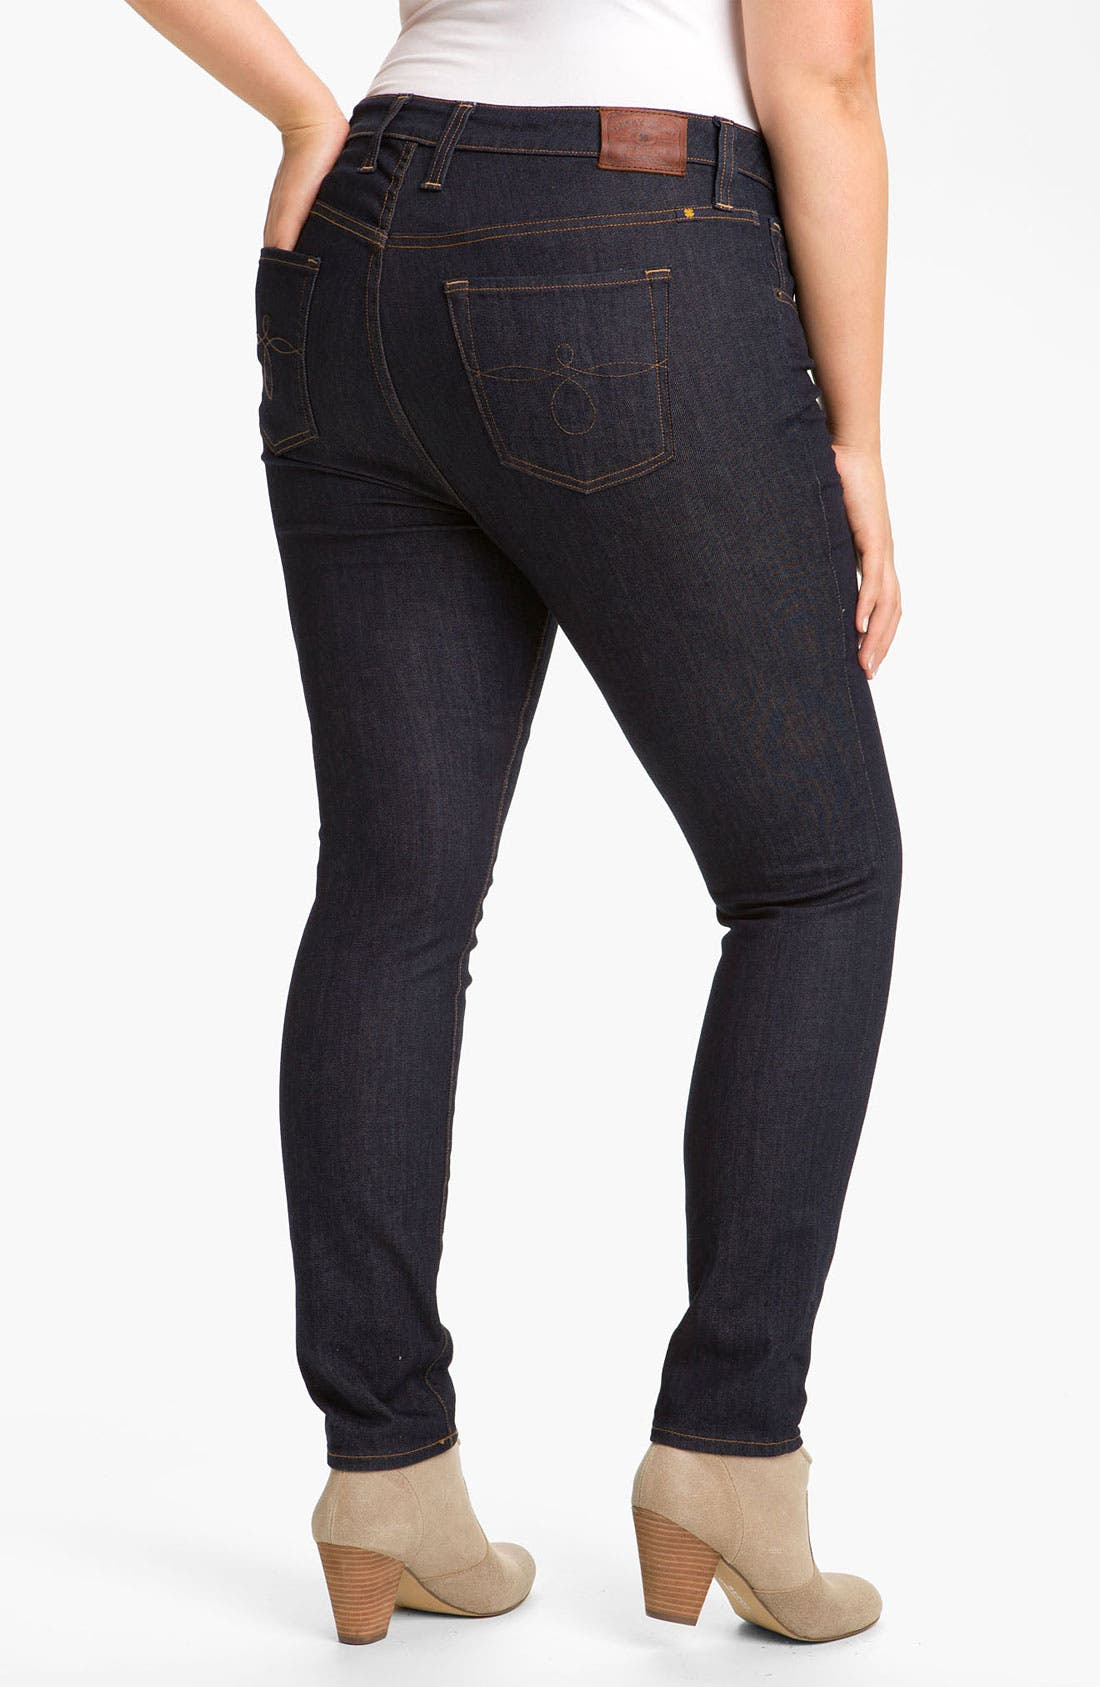 Alternate Image 1 Selected - Lucky Brand 'Ginger' Skinny Jeans (Plus)